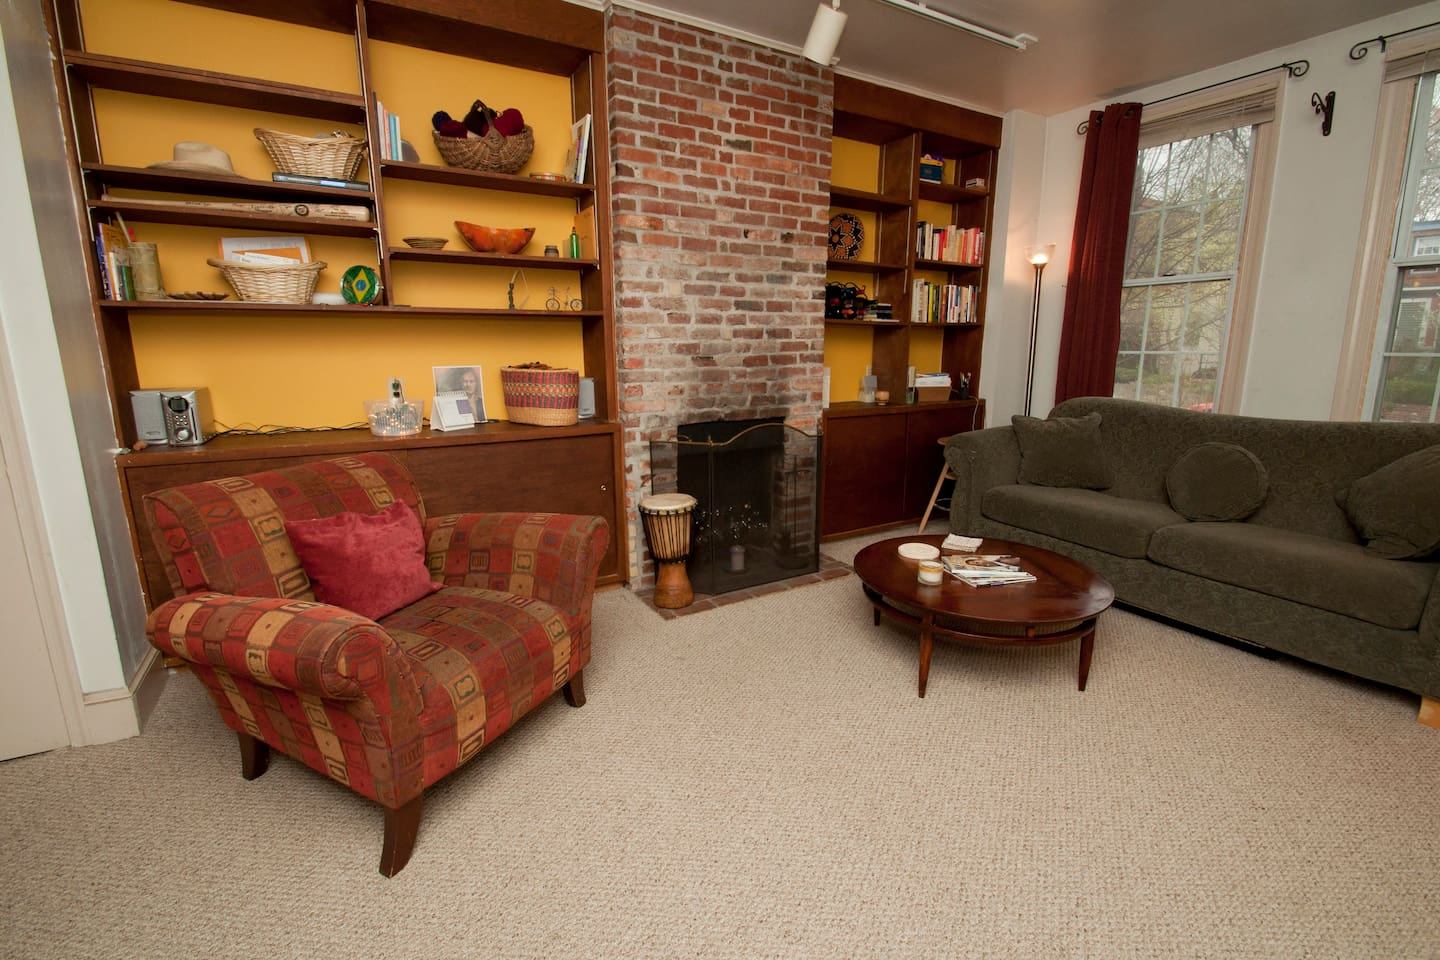 Cozy living room with exposed brick and comfy furniture for chillin' out.